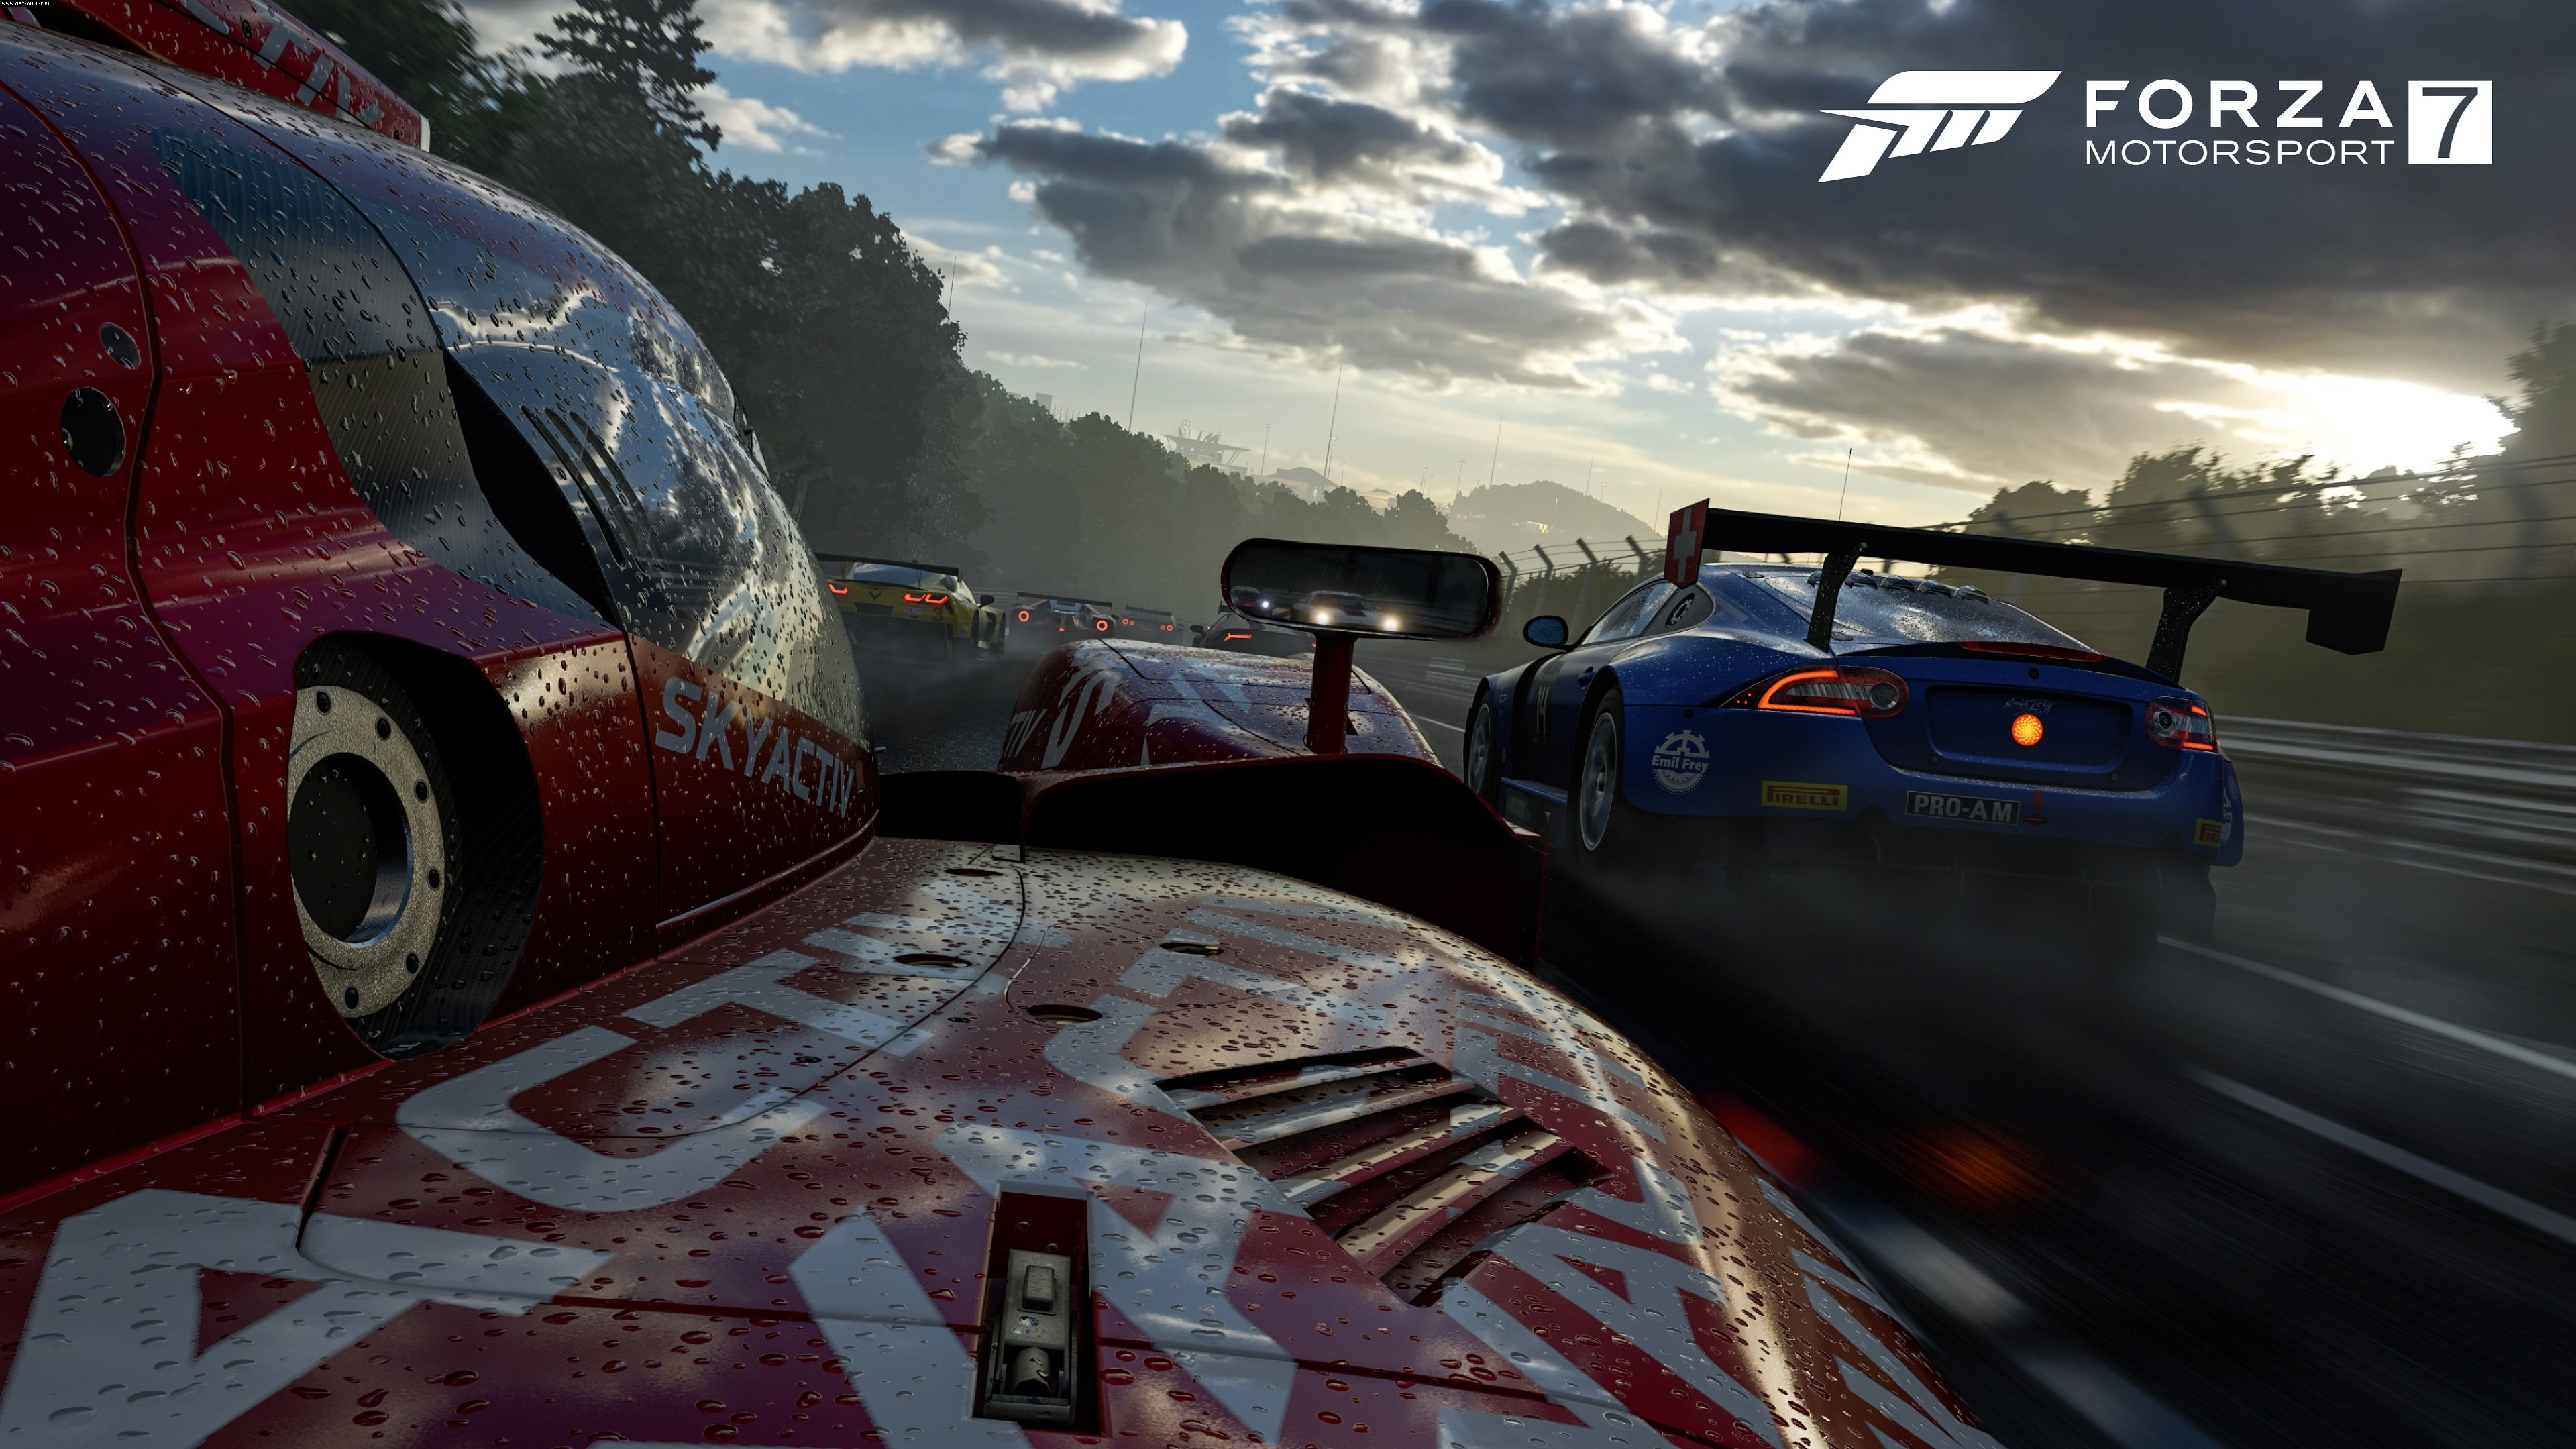 Forza Motorsport 7 XONE, PC Gry Screen 72/73, Turn 10 Studios, Microsoft Studios